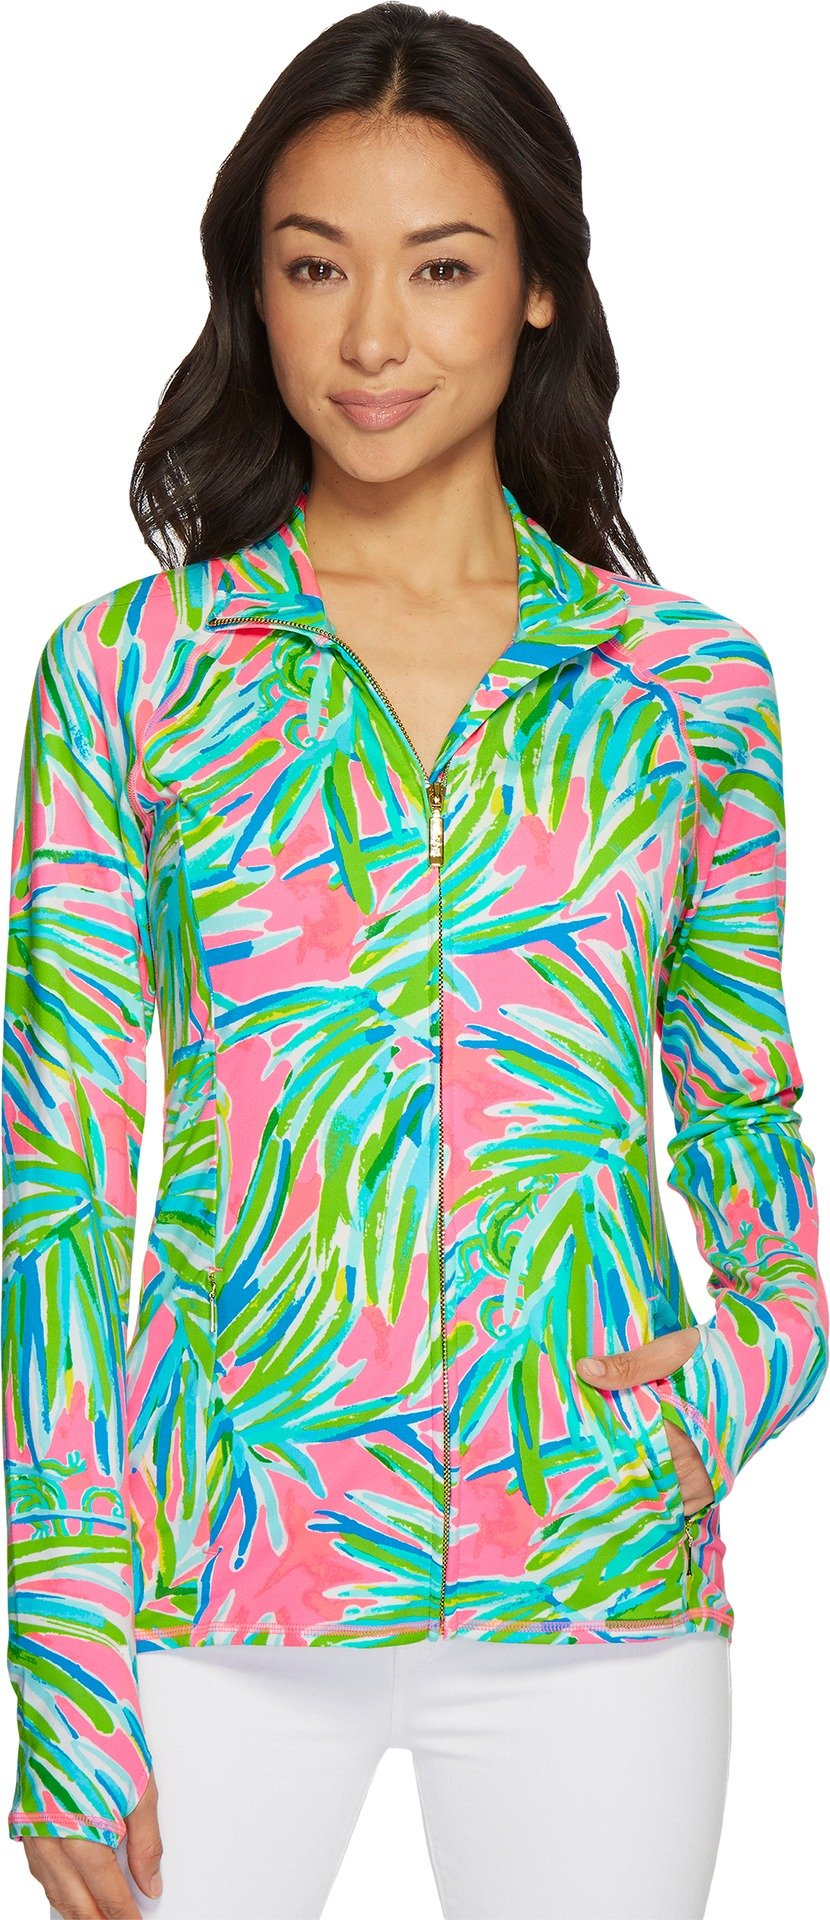 Lilly Pulitzer Women's Luxletic Serena Jacket Pink Sunset Royal Lime Large